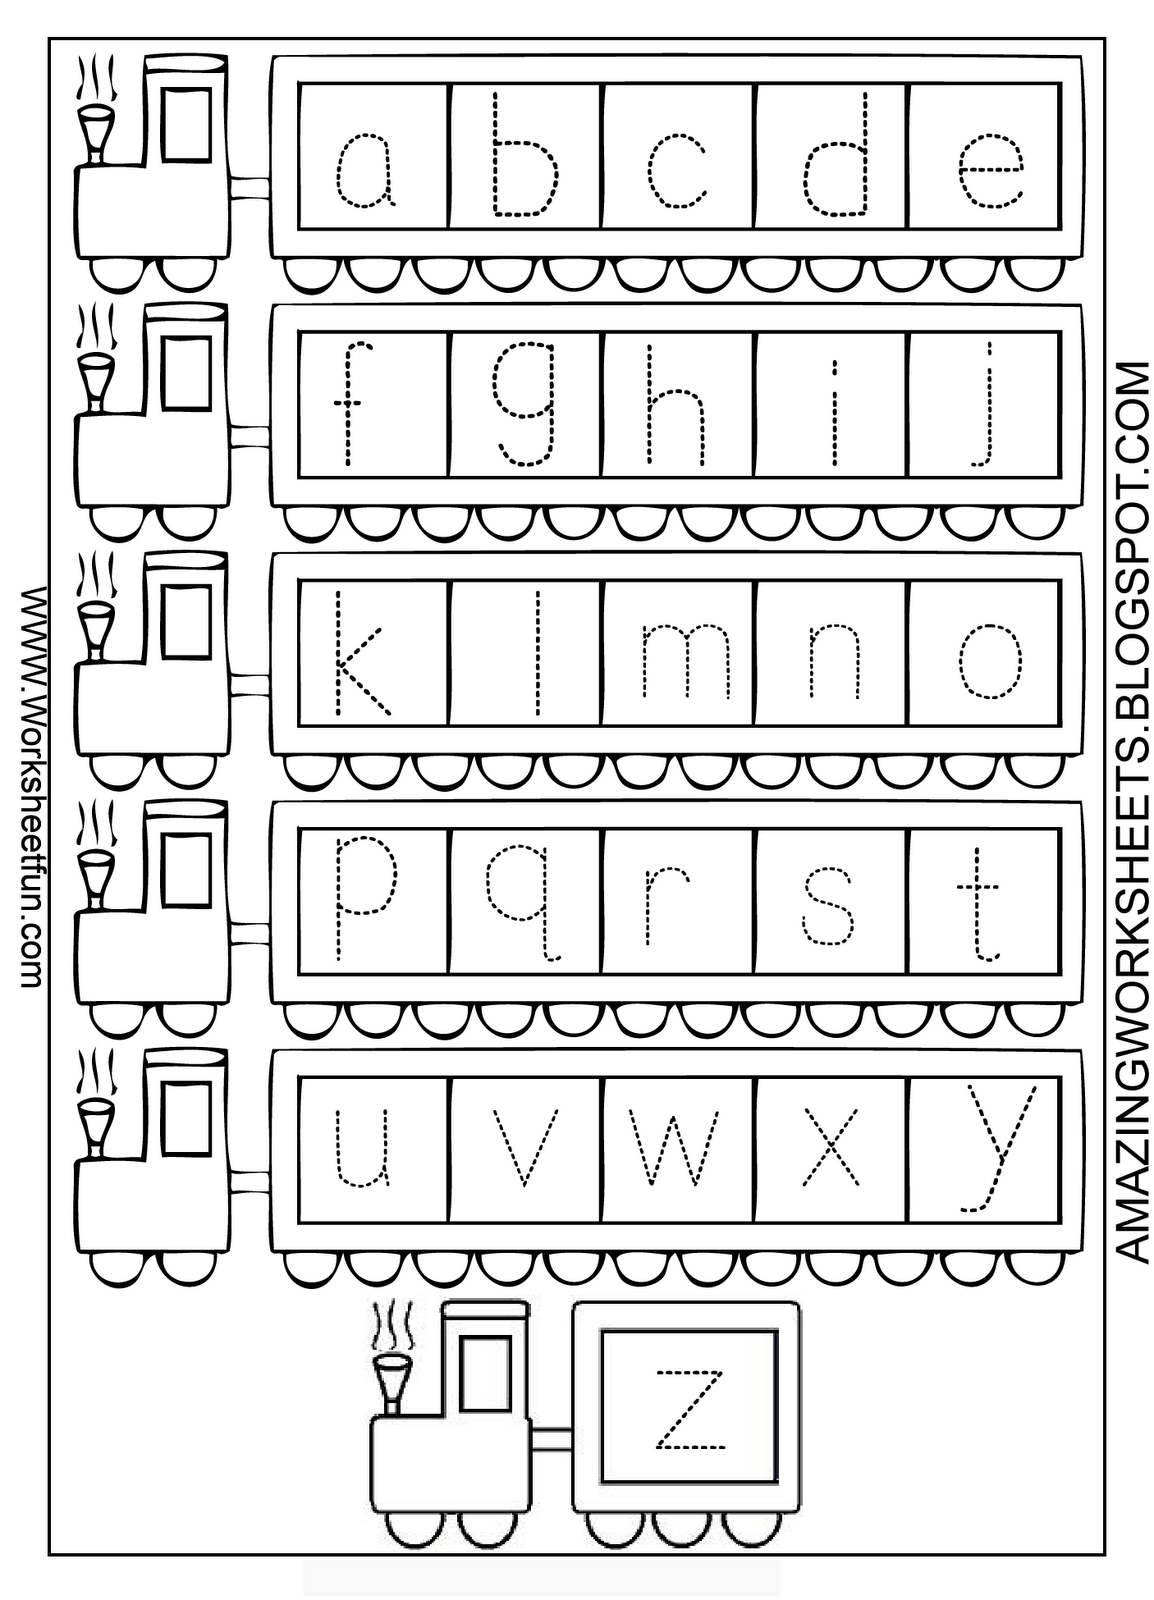 Printables Abc Tracing Worksheets For Kindergarten 1000 images about letter practice sheets on pinterest alphabet worksheets for kindergarten and small lette